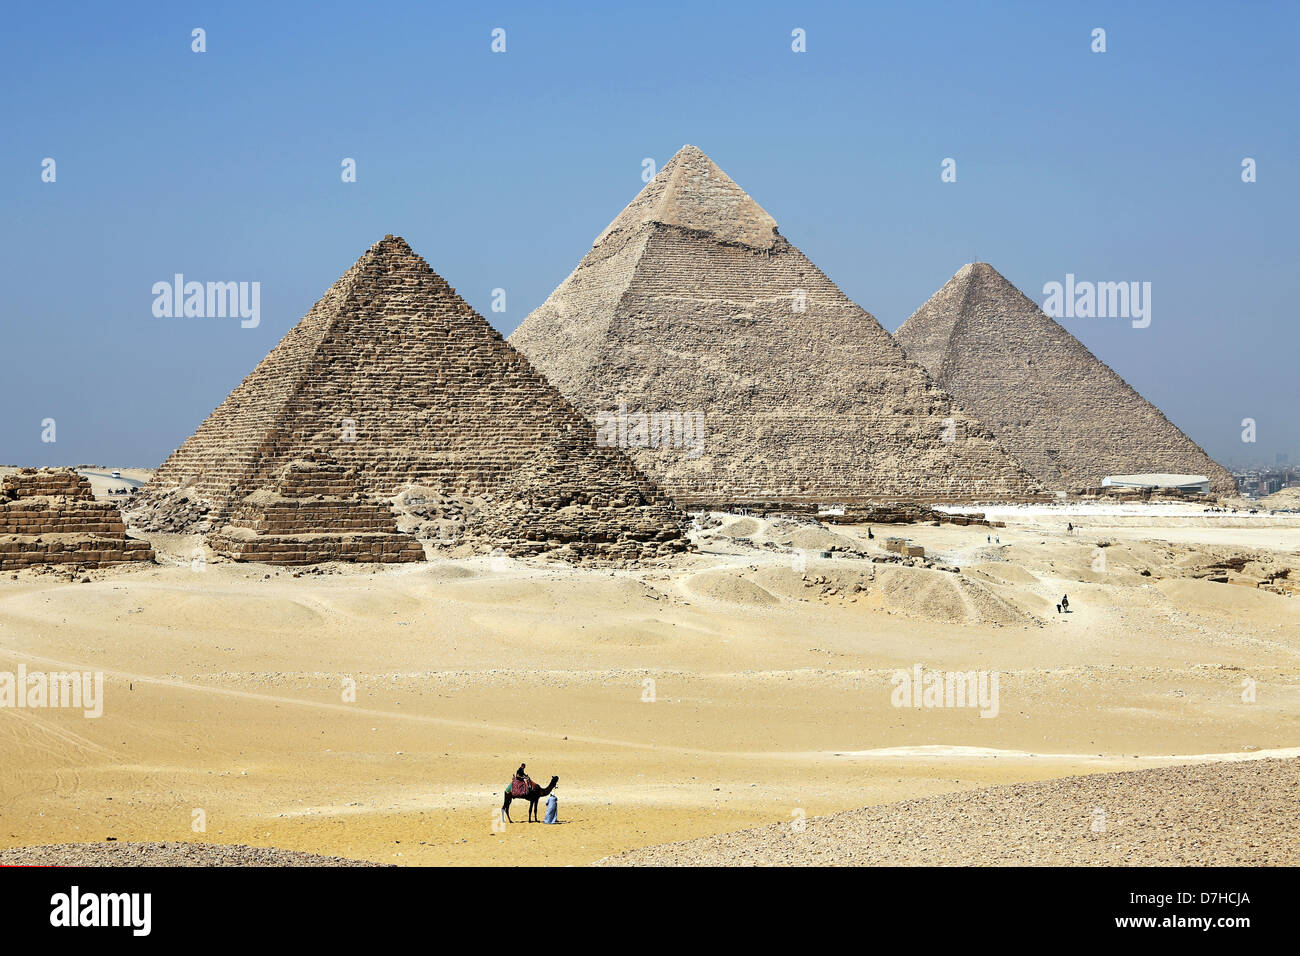 Camel Drivers in front of the Pyramids, Giza, Cairo, Egypt North Africa - Stock Image